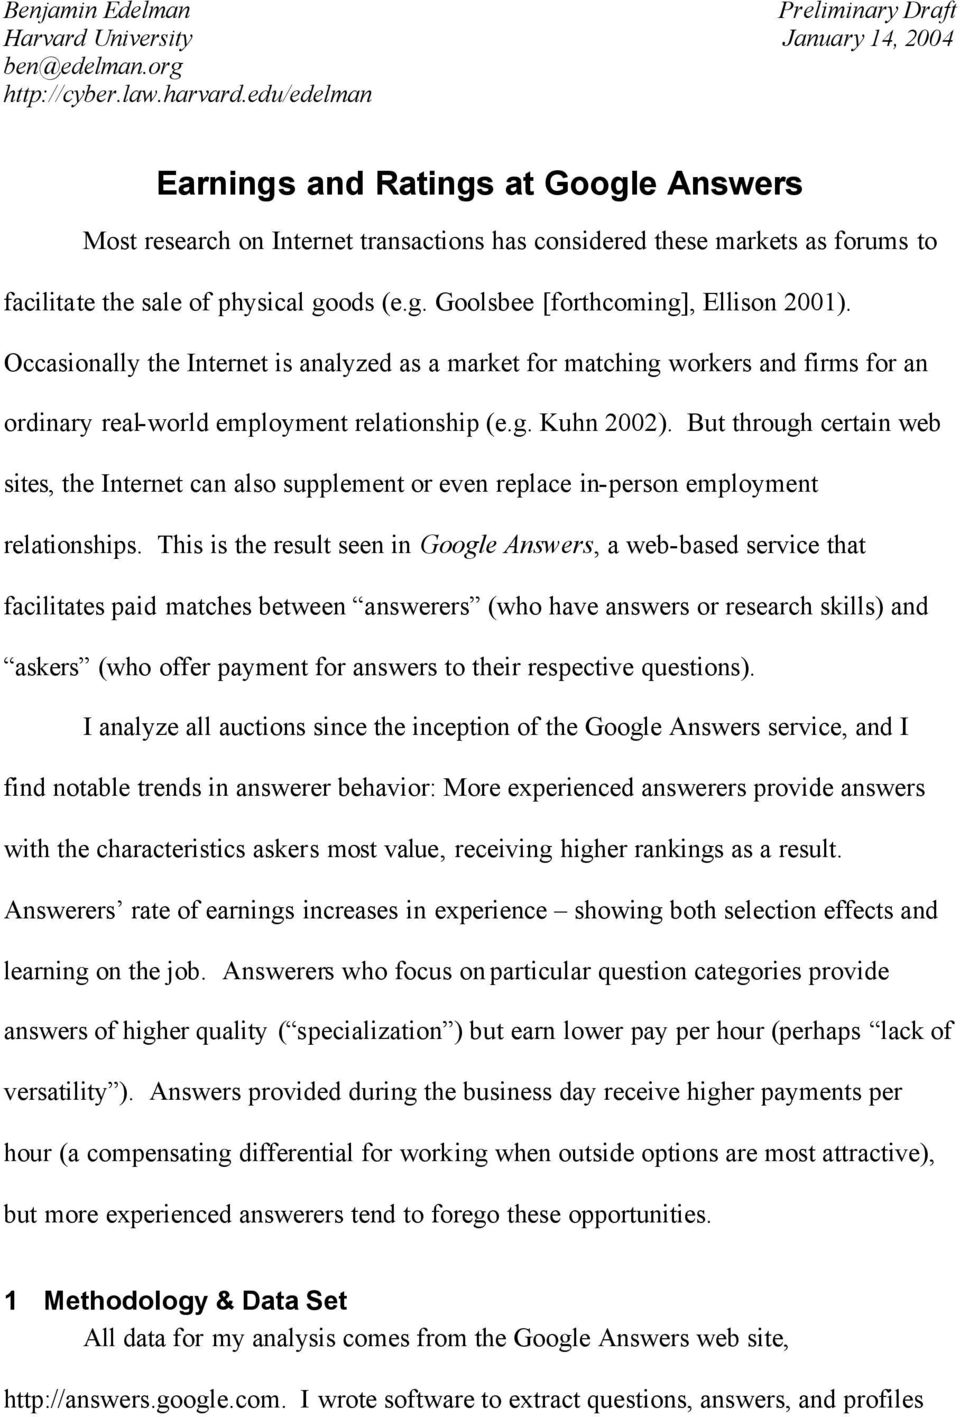 goods (e.g. Goolsbee [forthcoming], Ellison 2001). Occasionally the Internet is analyzed as a market for matching workers and firms for an ordinary real-world employment relationship (e.g. Kuhn 2002).